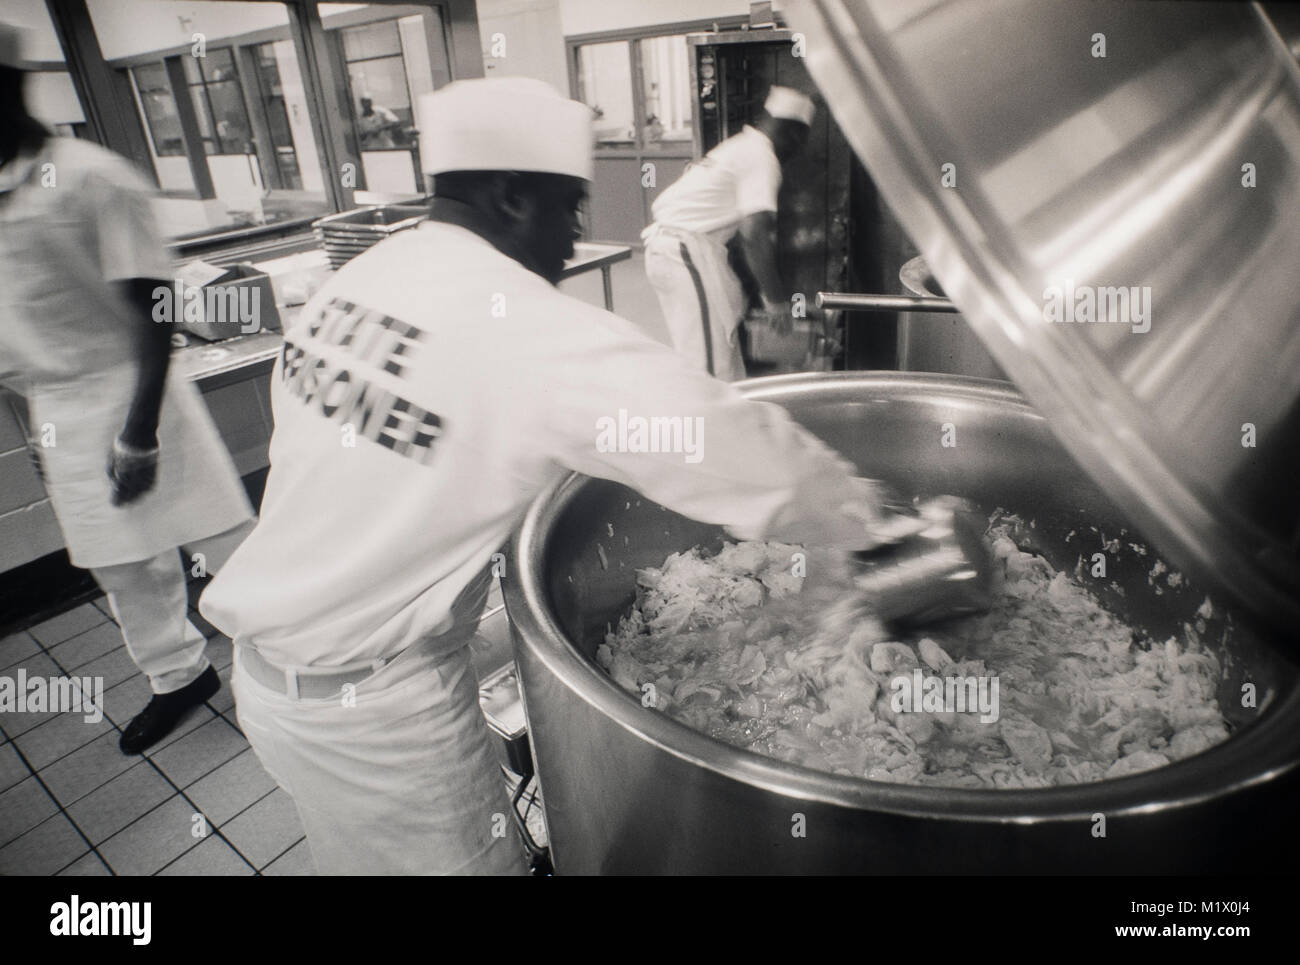 Convicts work in a prison kitchen inside a state prison in Georgia, USA. - Stock Image